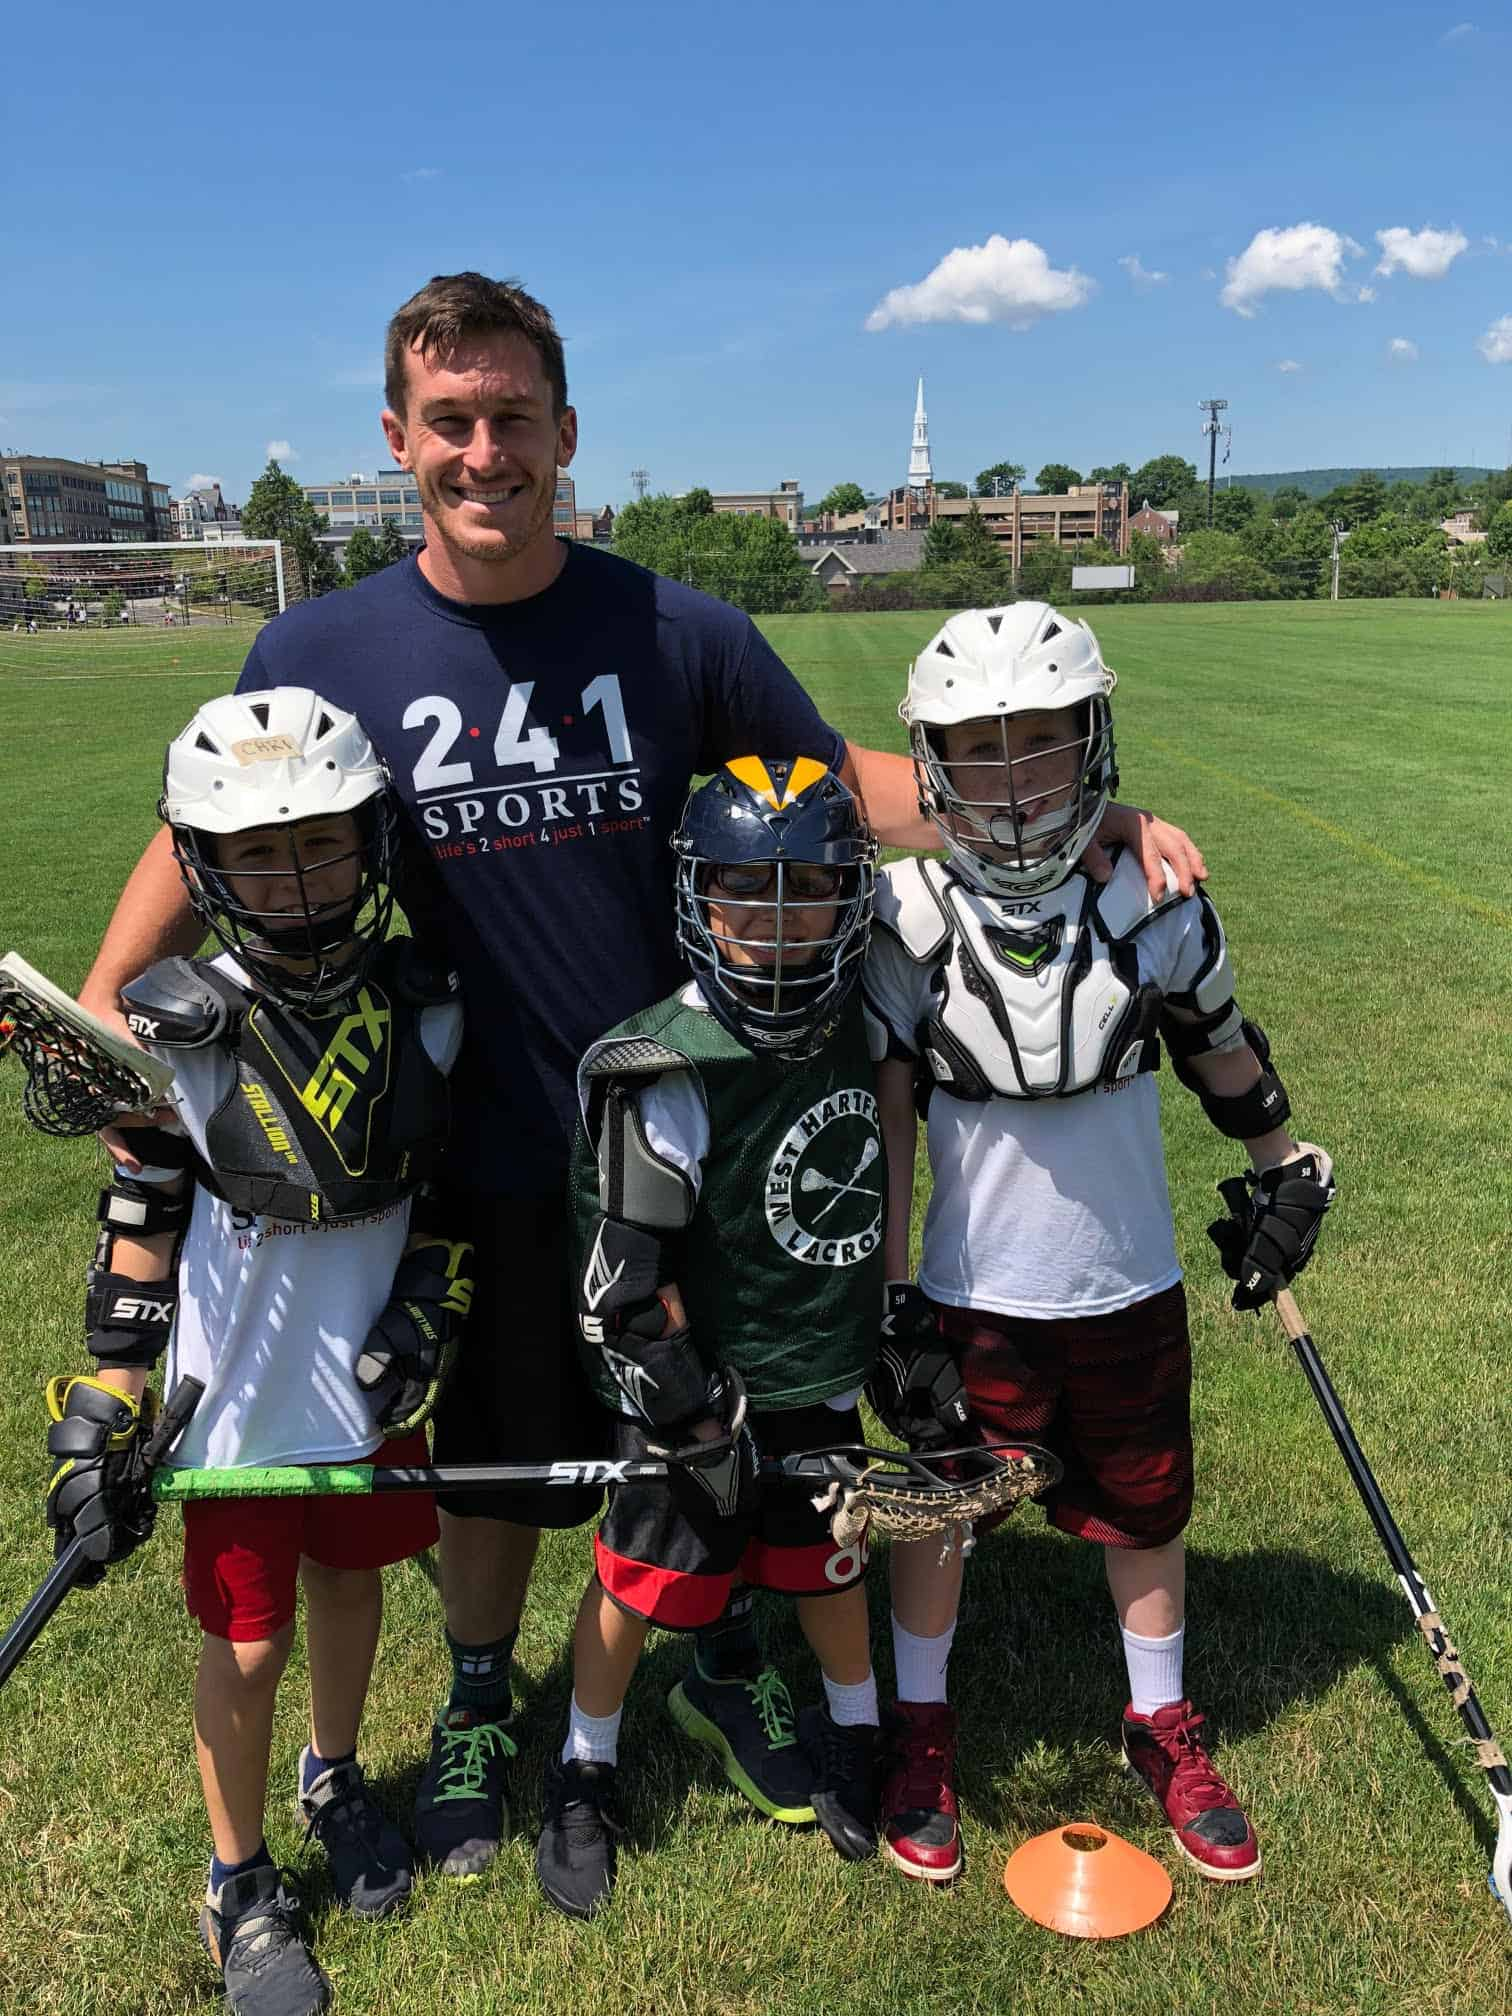 Boys at Summer Camp lacrosse